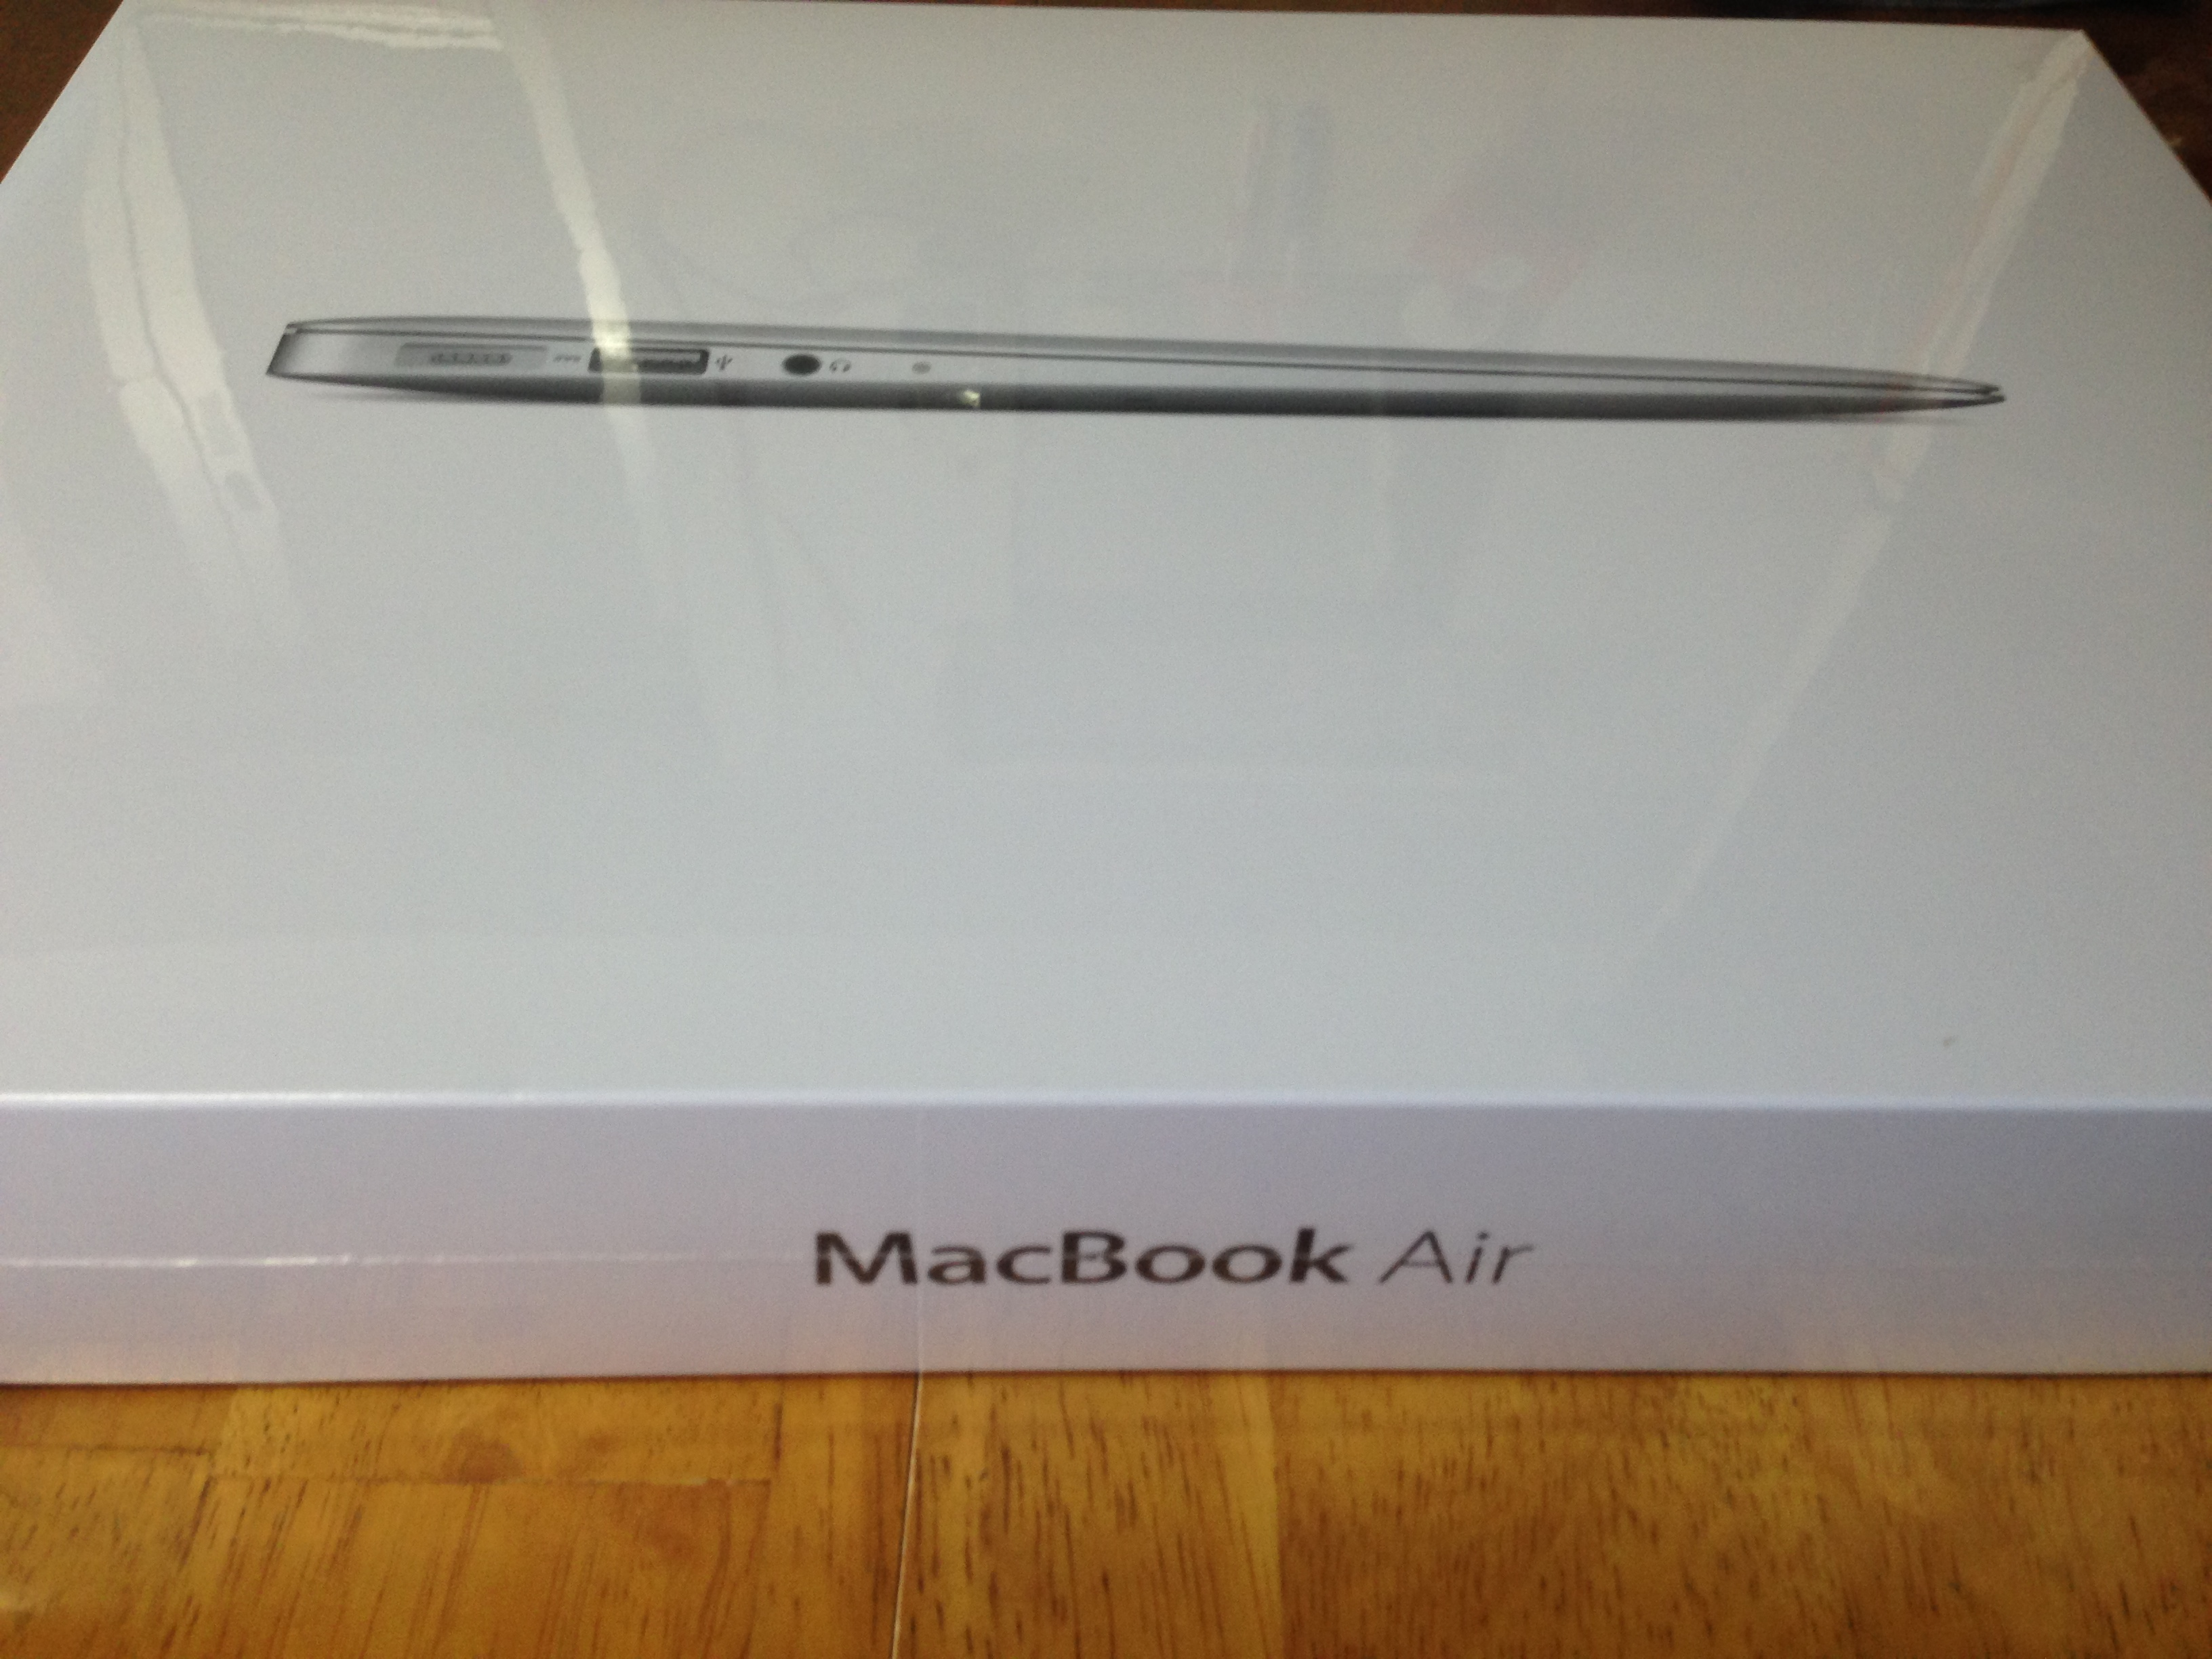 MacBook Air (mid 2012)11インチ MD224J/A